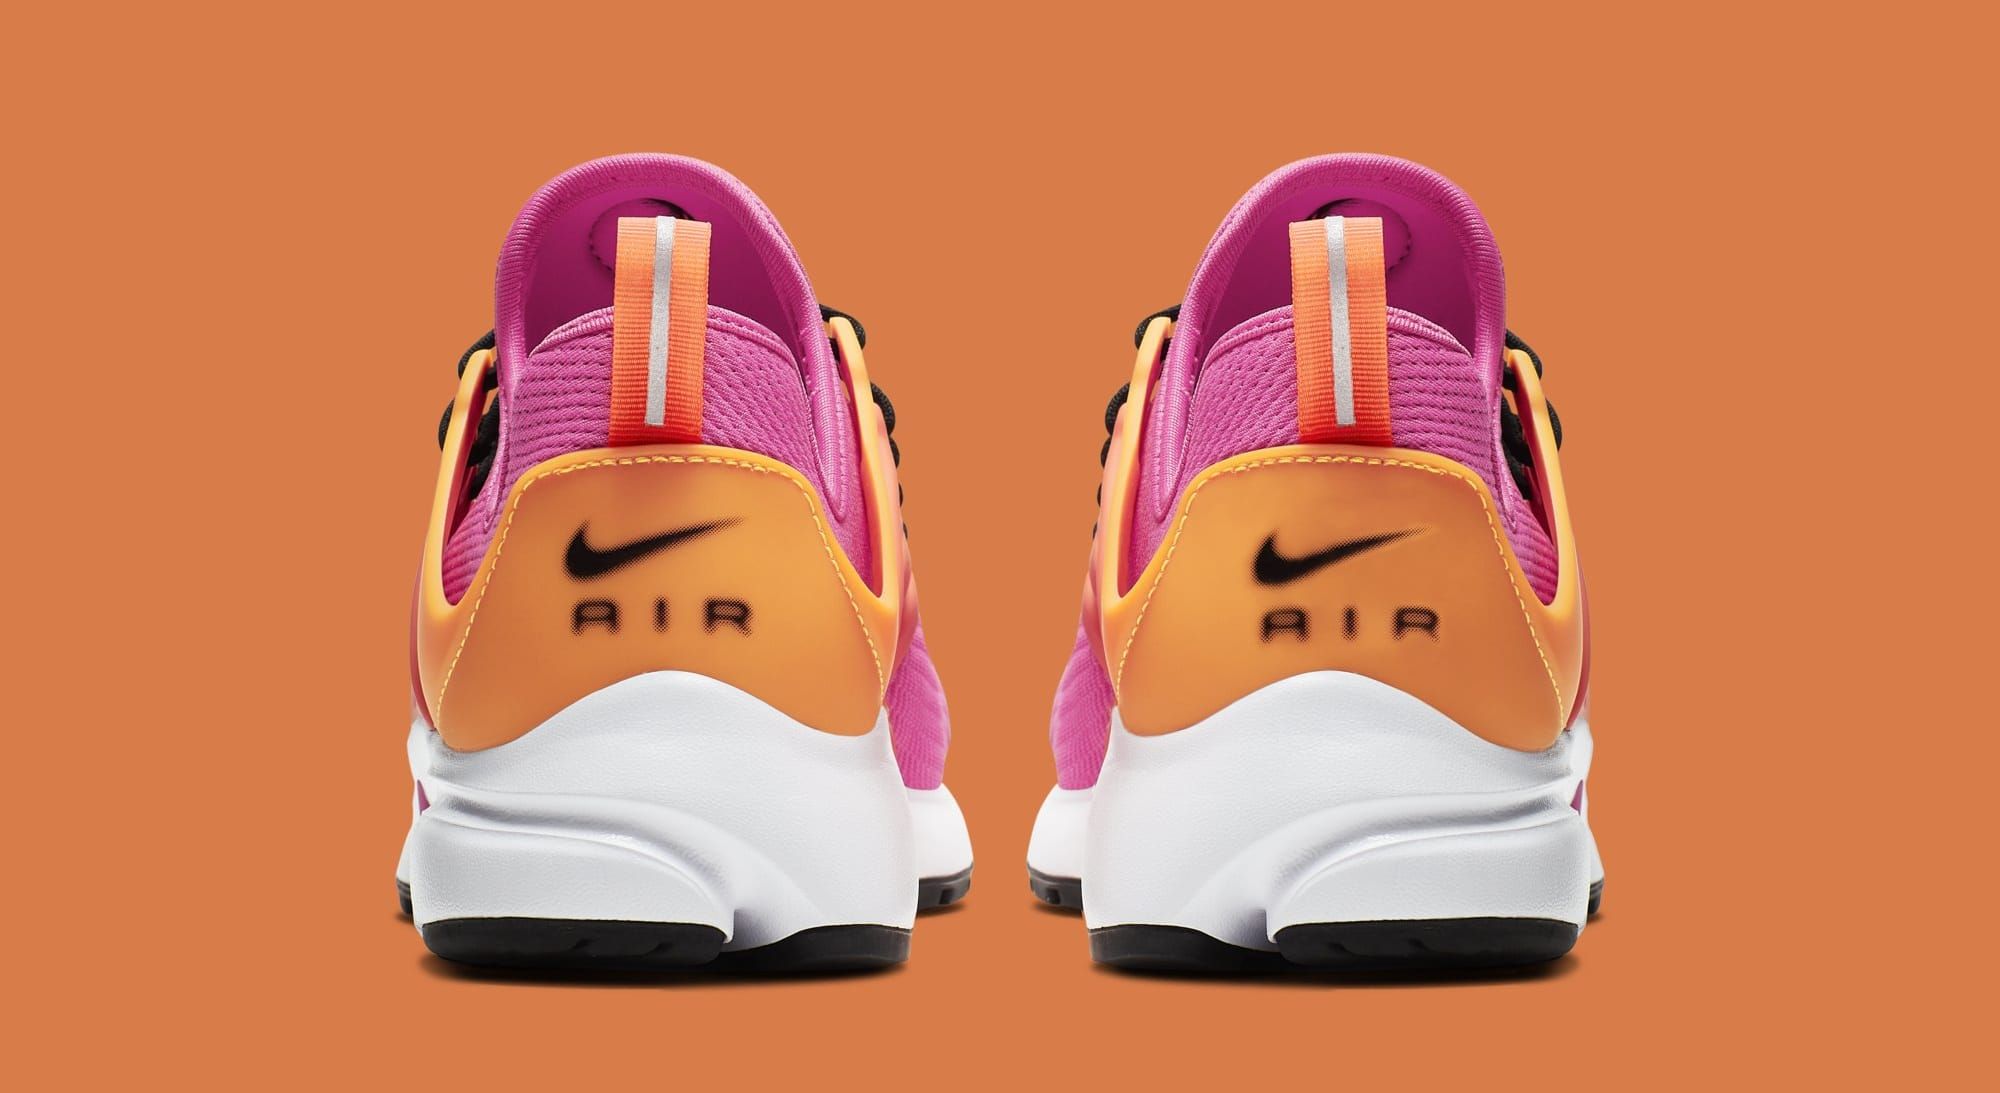 separation shoes 8512a 04762 Image via Nike WMNS Nike Air Presto  Laser Fuchsia  878068-607 (Heel)